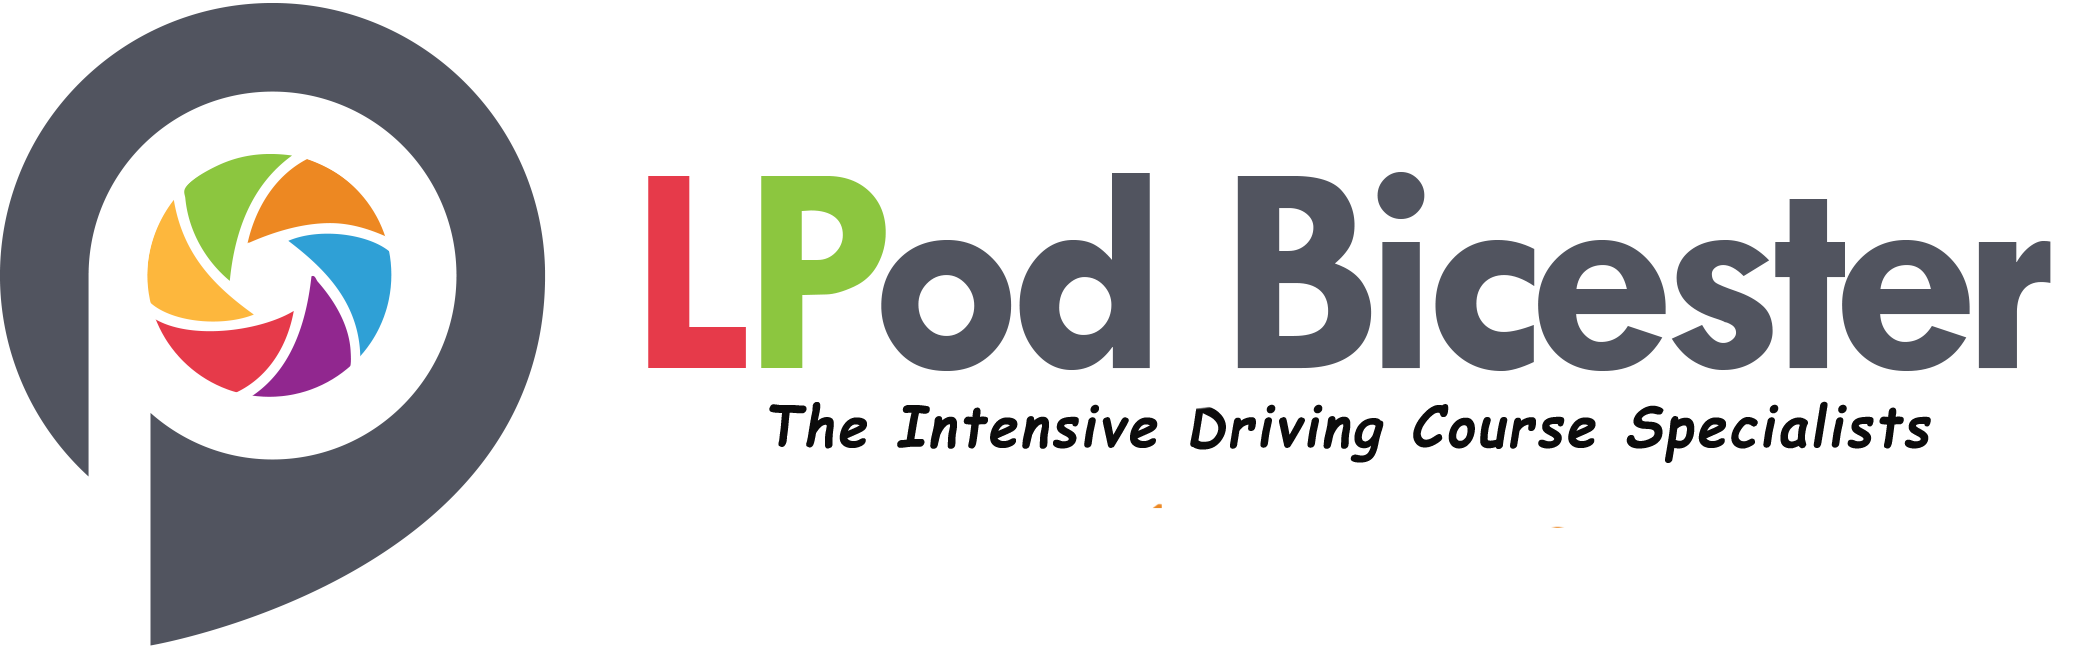 intensive driving courses bicester, intensive driving lessons bicester, intensive driving school bicester, learn to drive bicester, driving lessons in biccester